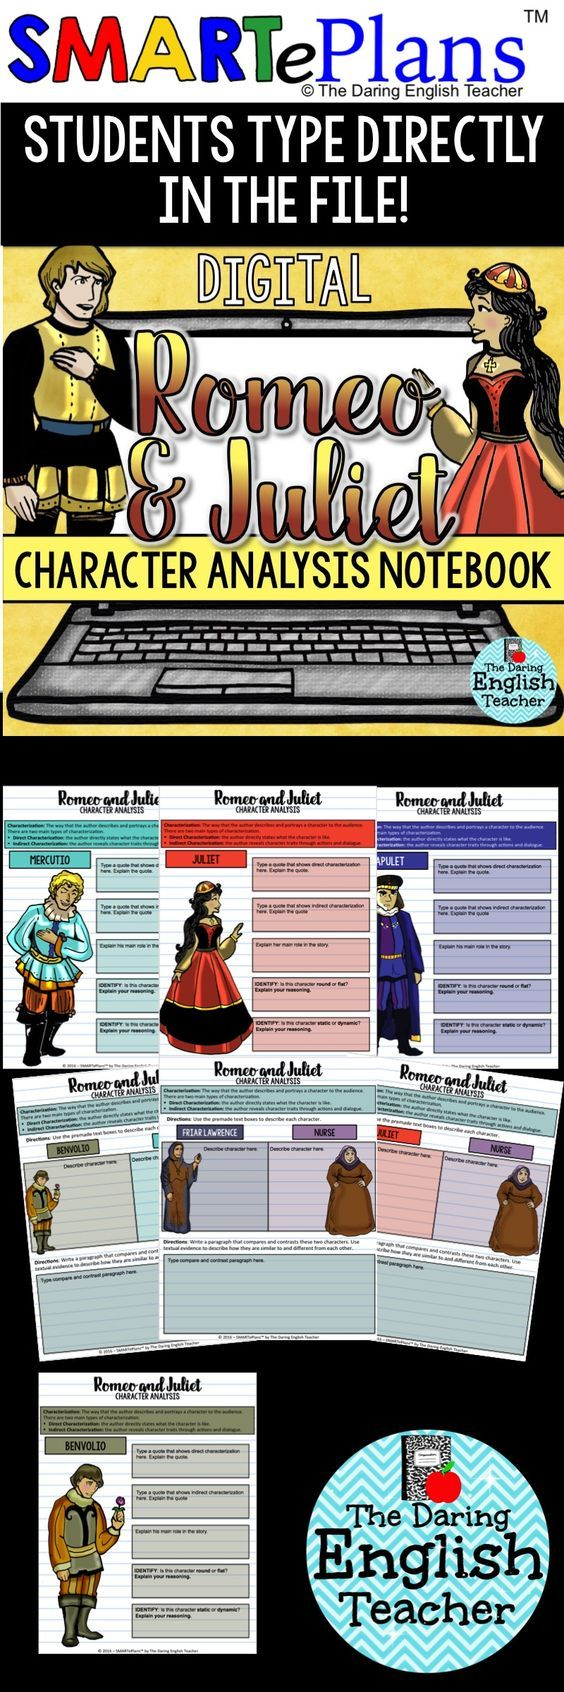 Digital Romeo and Juliet Character Analysis Interactive Notebook. Ideal for the digital high school English classroom, this digital character analysis resource includes graphic organizers for all of the main characters.